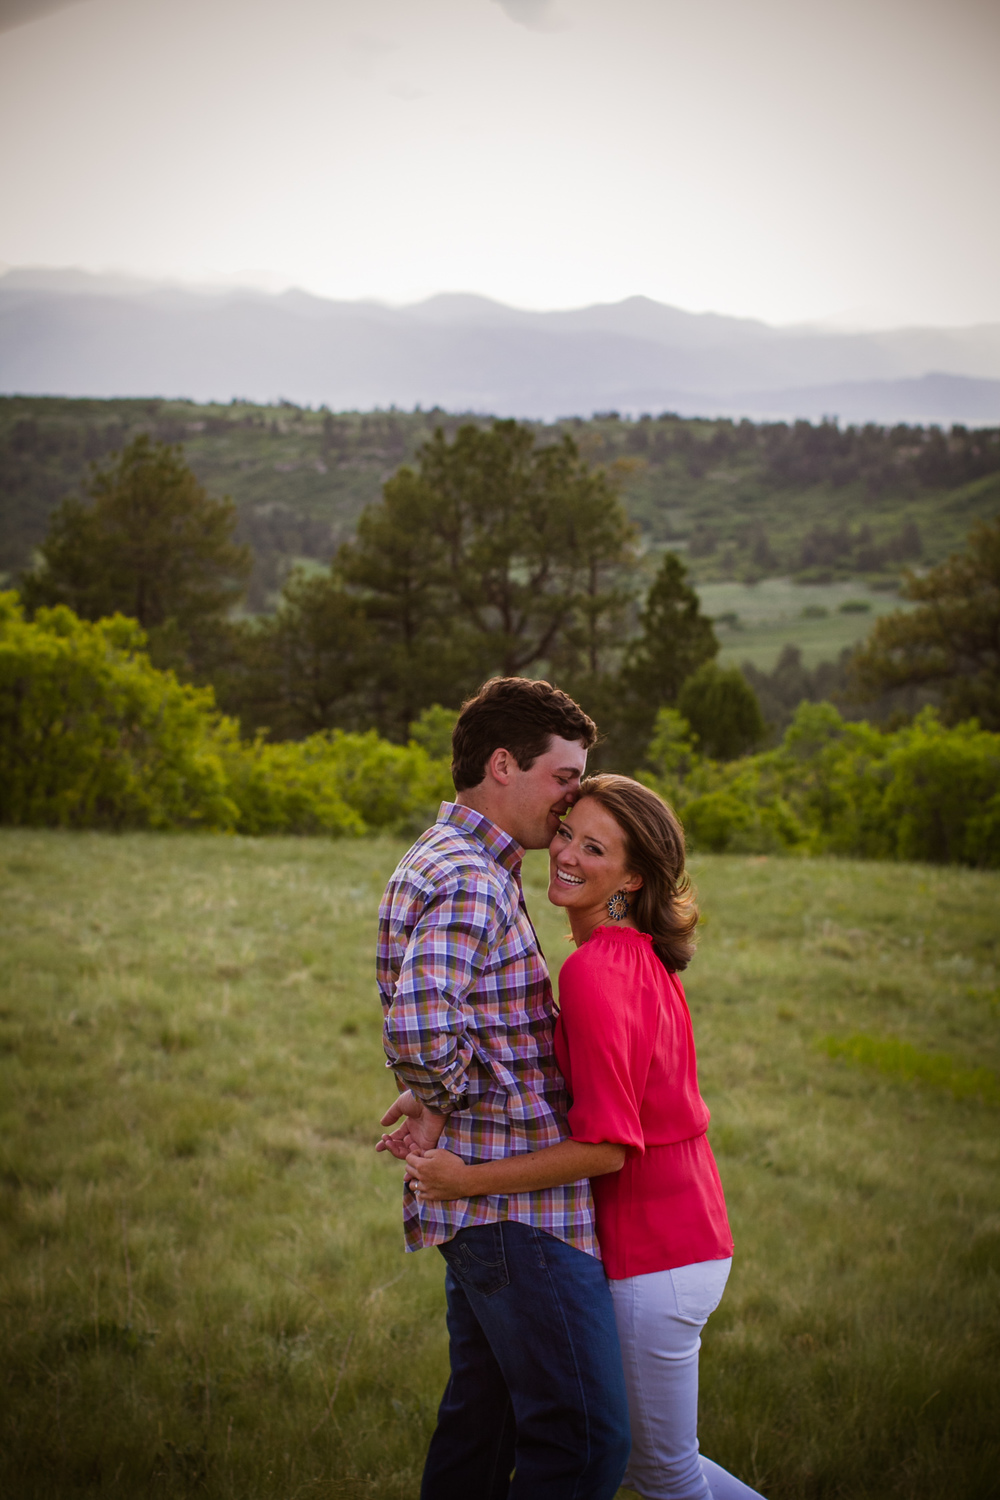 Castle_Pines_Colorado'_Engagement_Photos_014.JPG